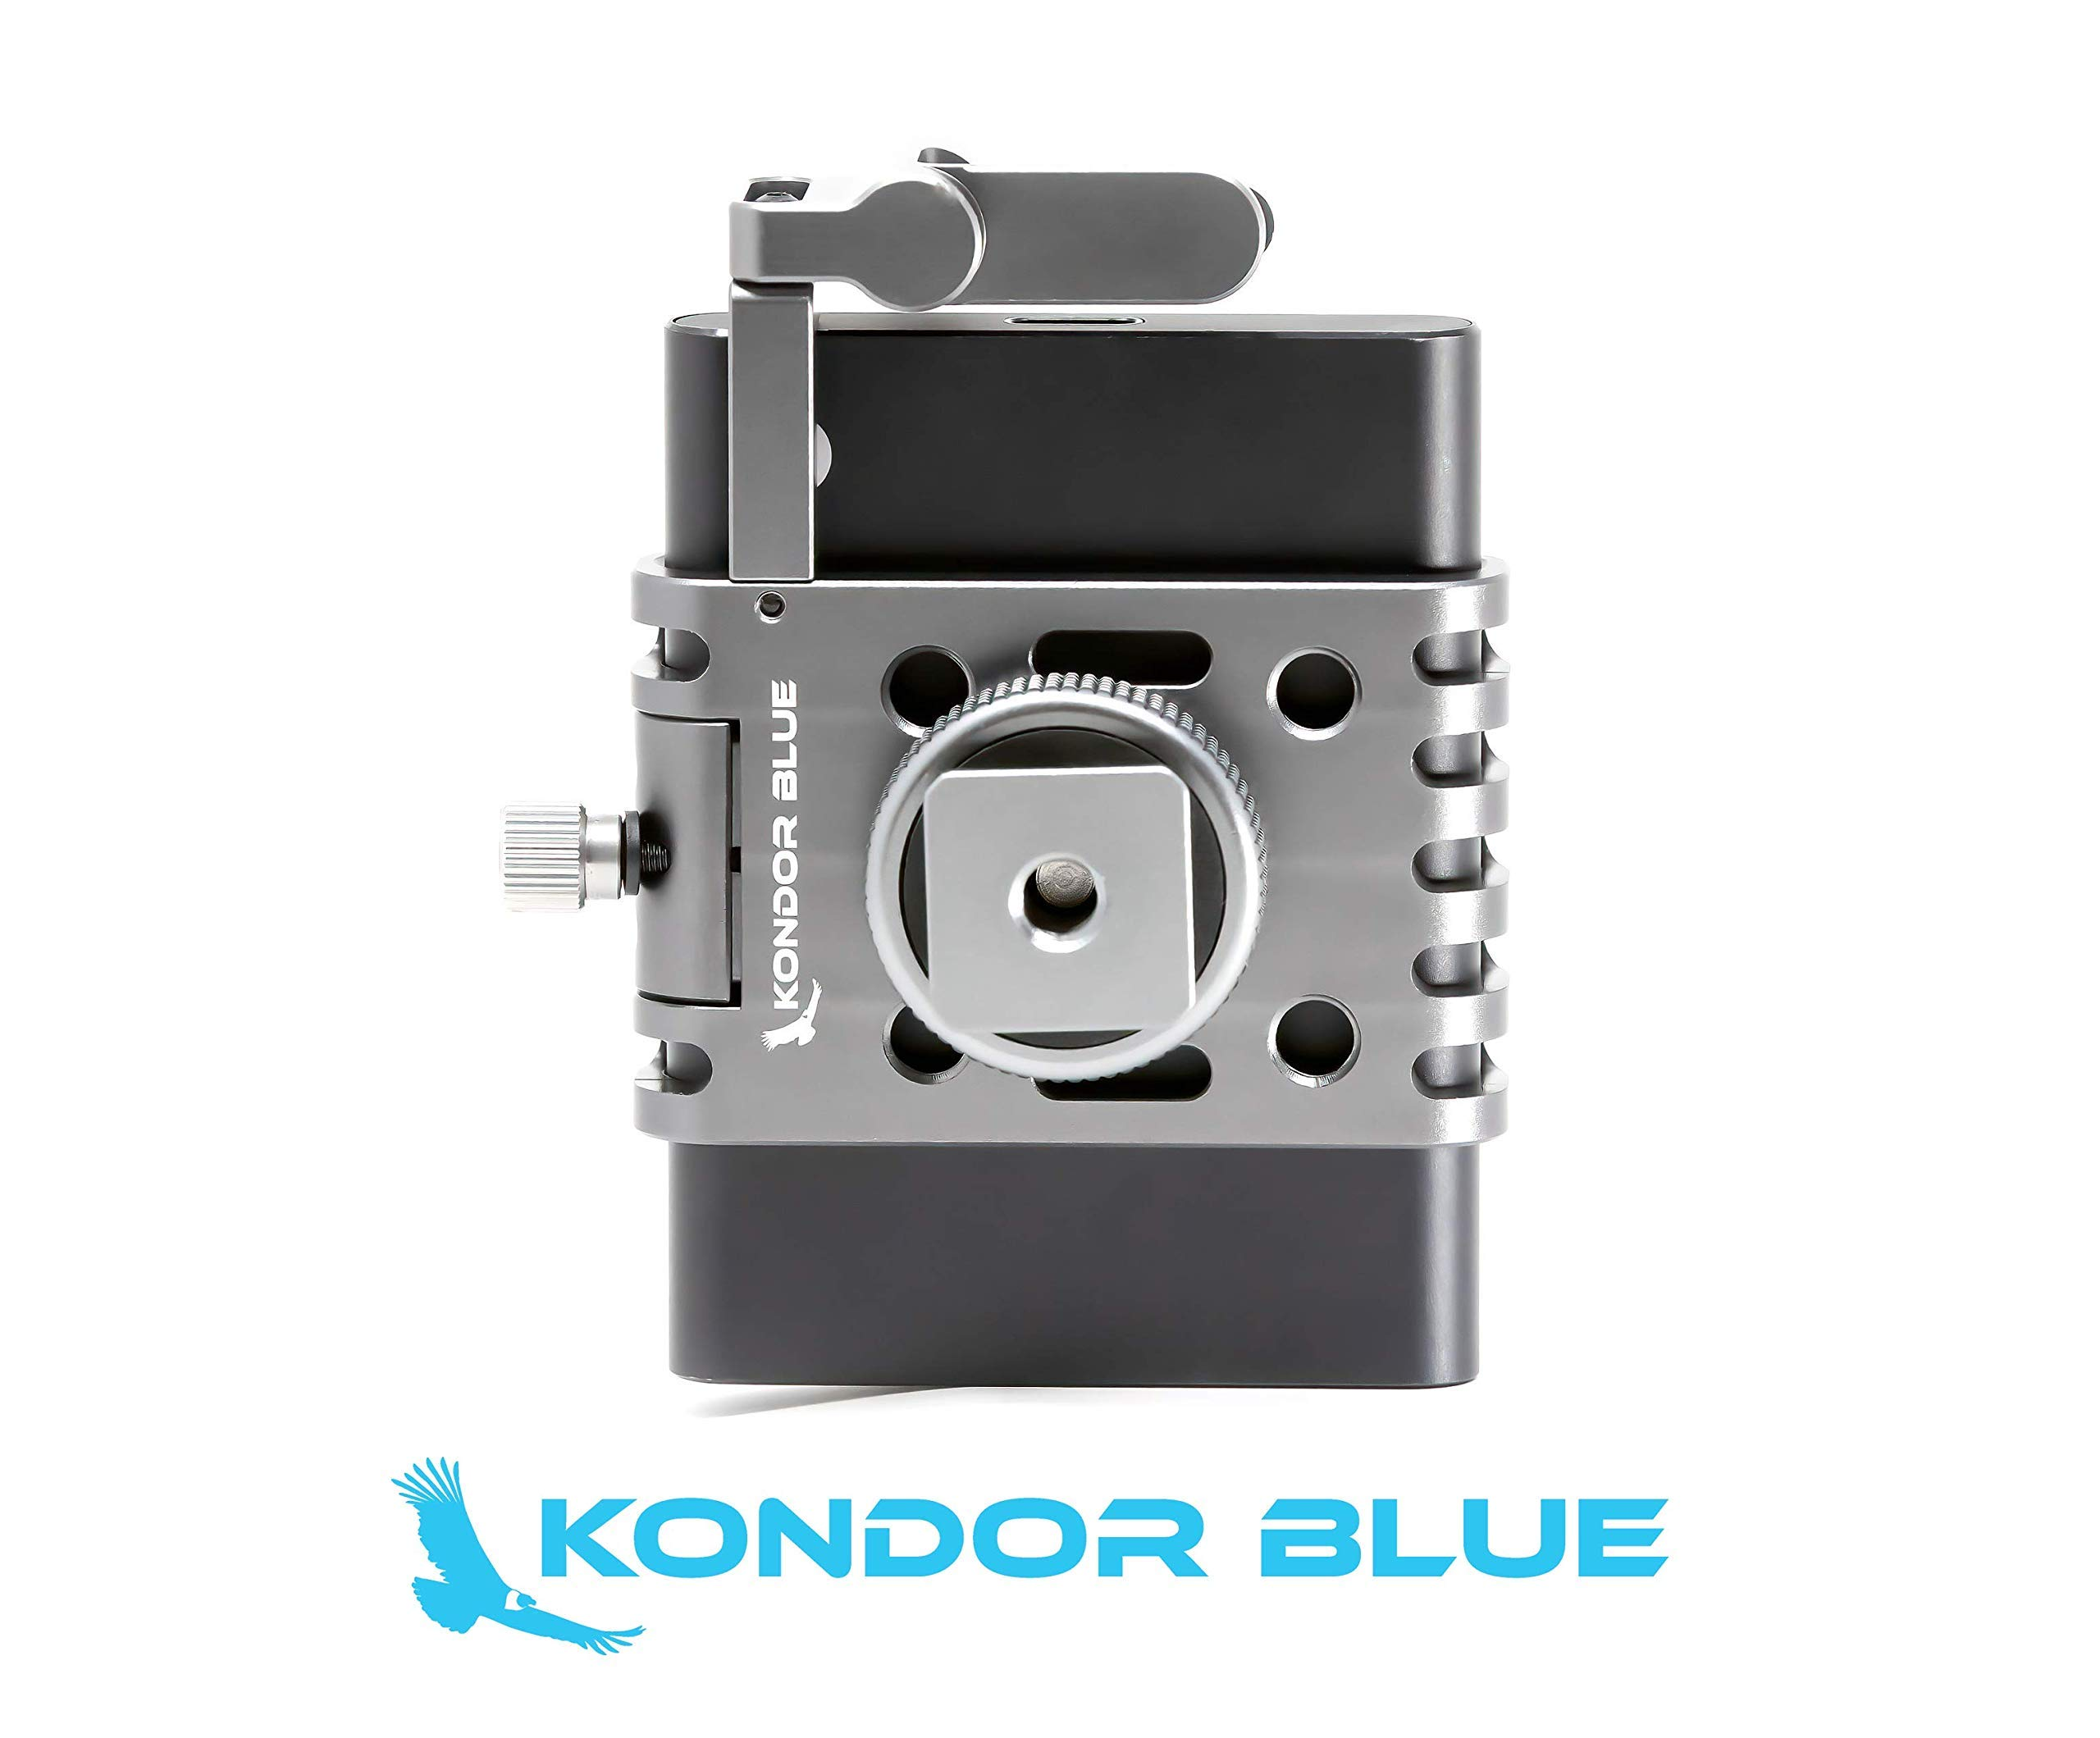 KONDOR BLUE T5 SSD Holder w/Cold Shoe Mount for Z CAM S6 F6 F8 BMPCC4K/6K. Compatible with Any cage or hot Shoe. Made for Samsung T5 Media Drives commonly Used with Kondor Blue USB C Cable.